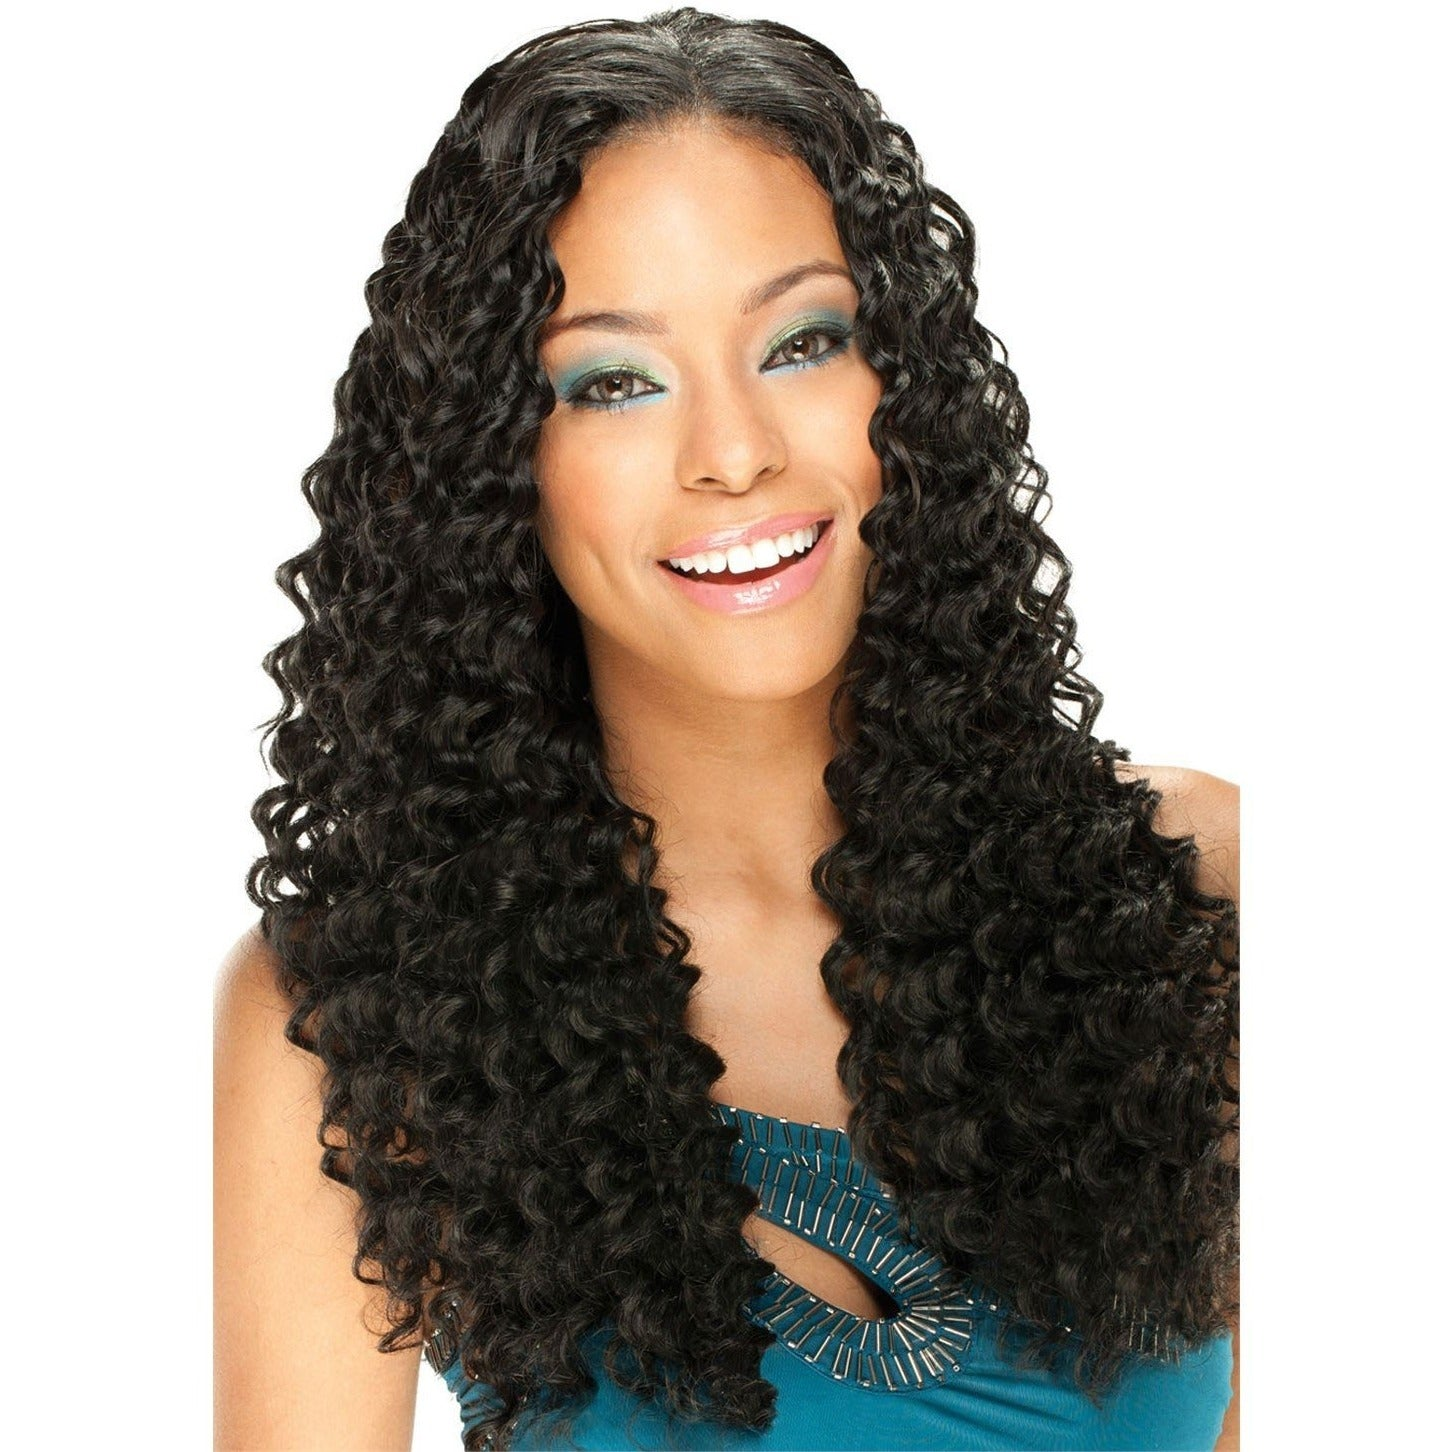 MODEL MODEL REMIST 100 INDIAN REMY HUMAN HAIR WEAVE LONG Deep Kiss